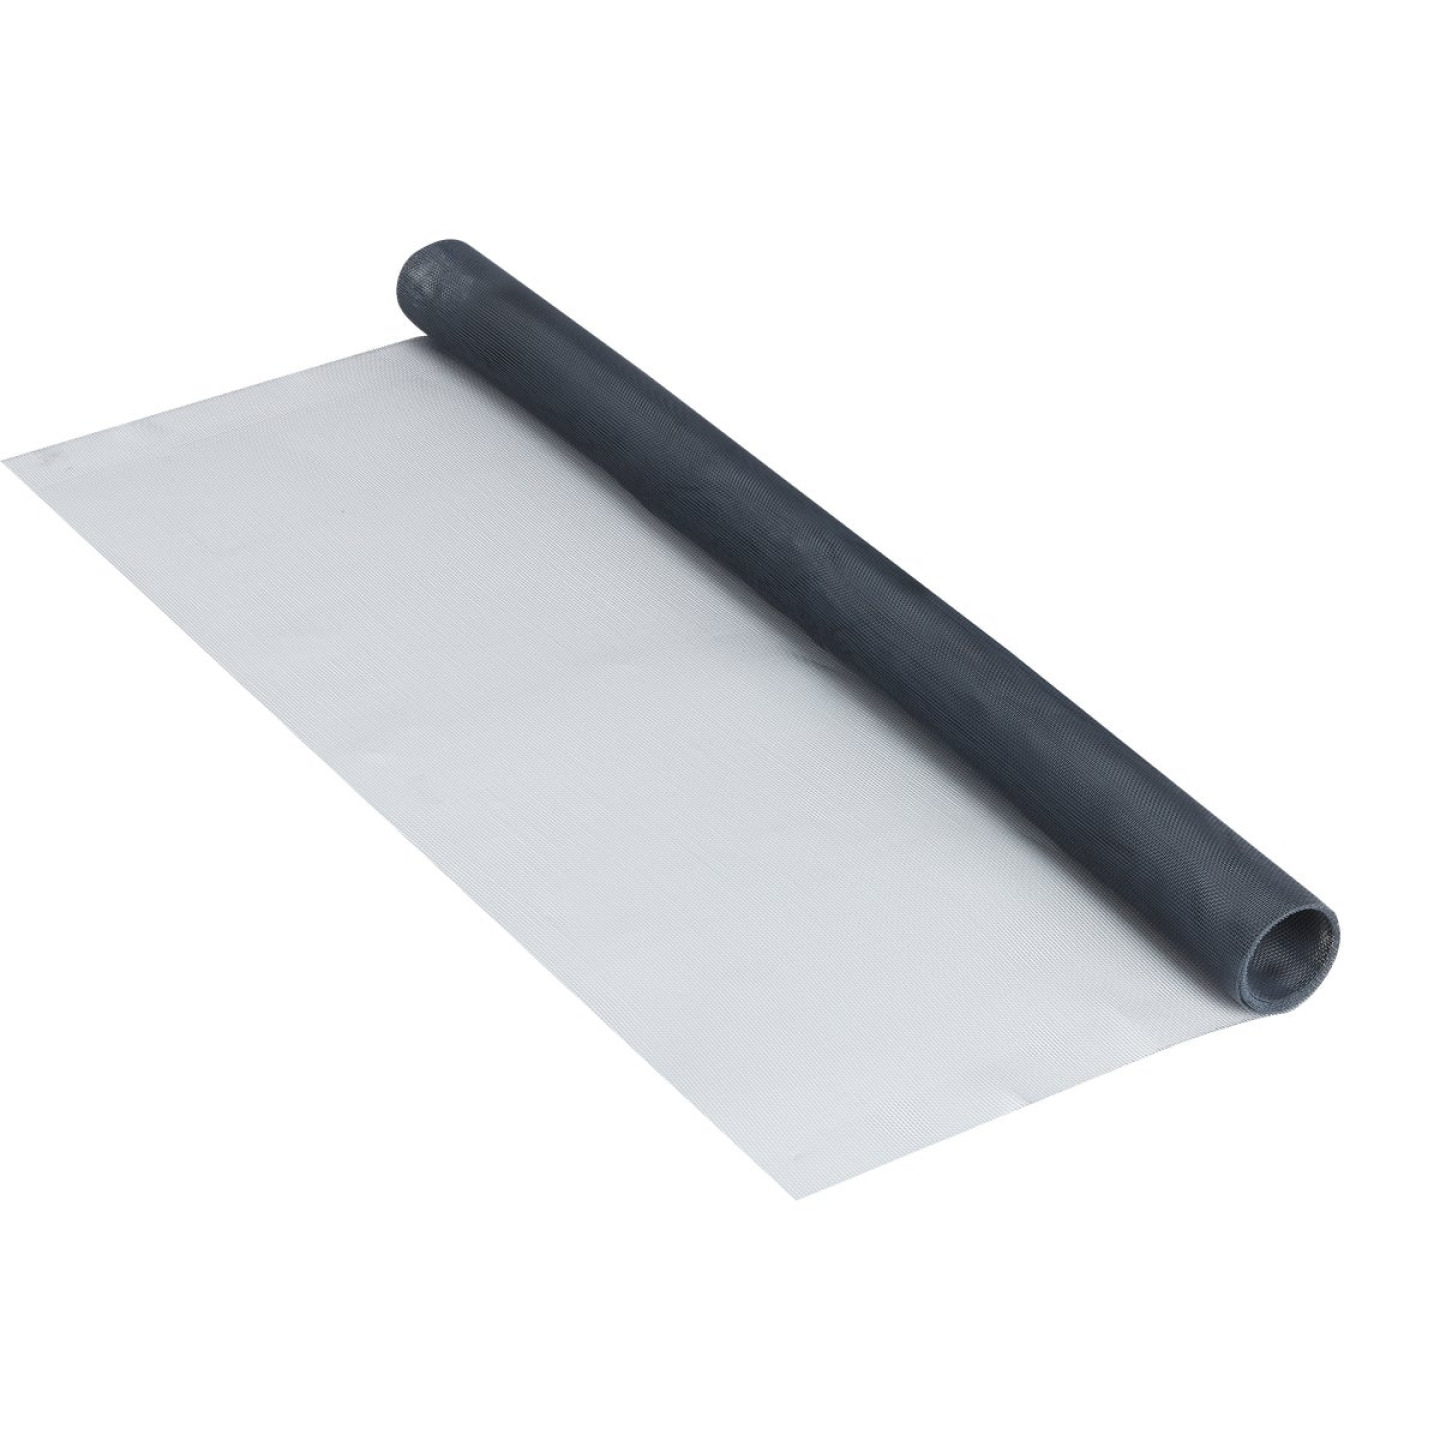 Phifer 30 In. x 84 In. Charcoal Aluminum Screen Ready Rolls Image 3